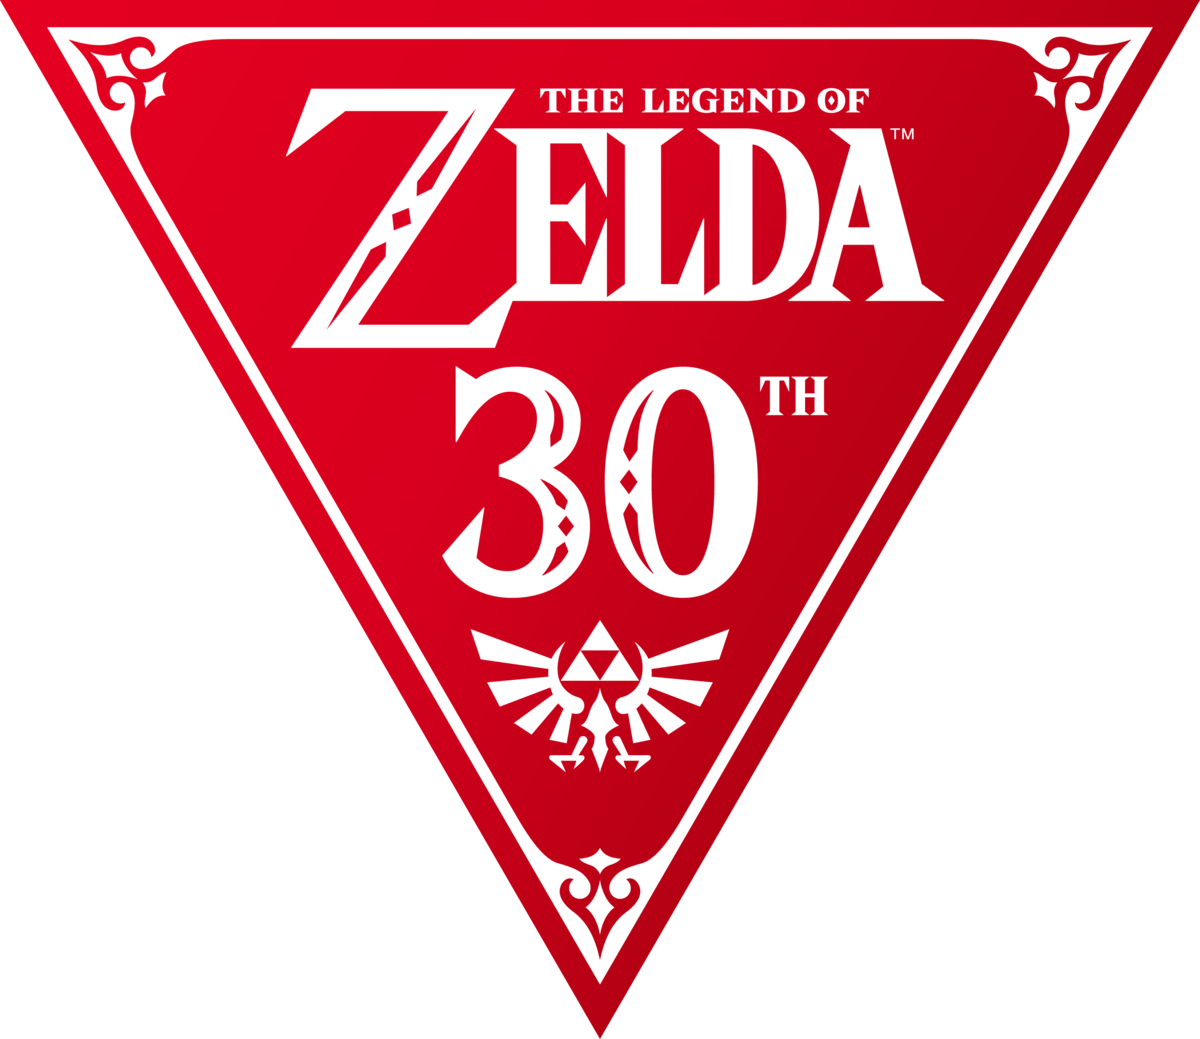 The Legend Of Zelda 30th Anniversary Zelda Wiki